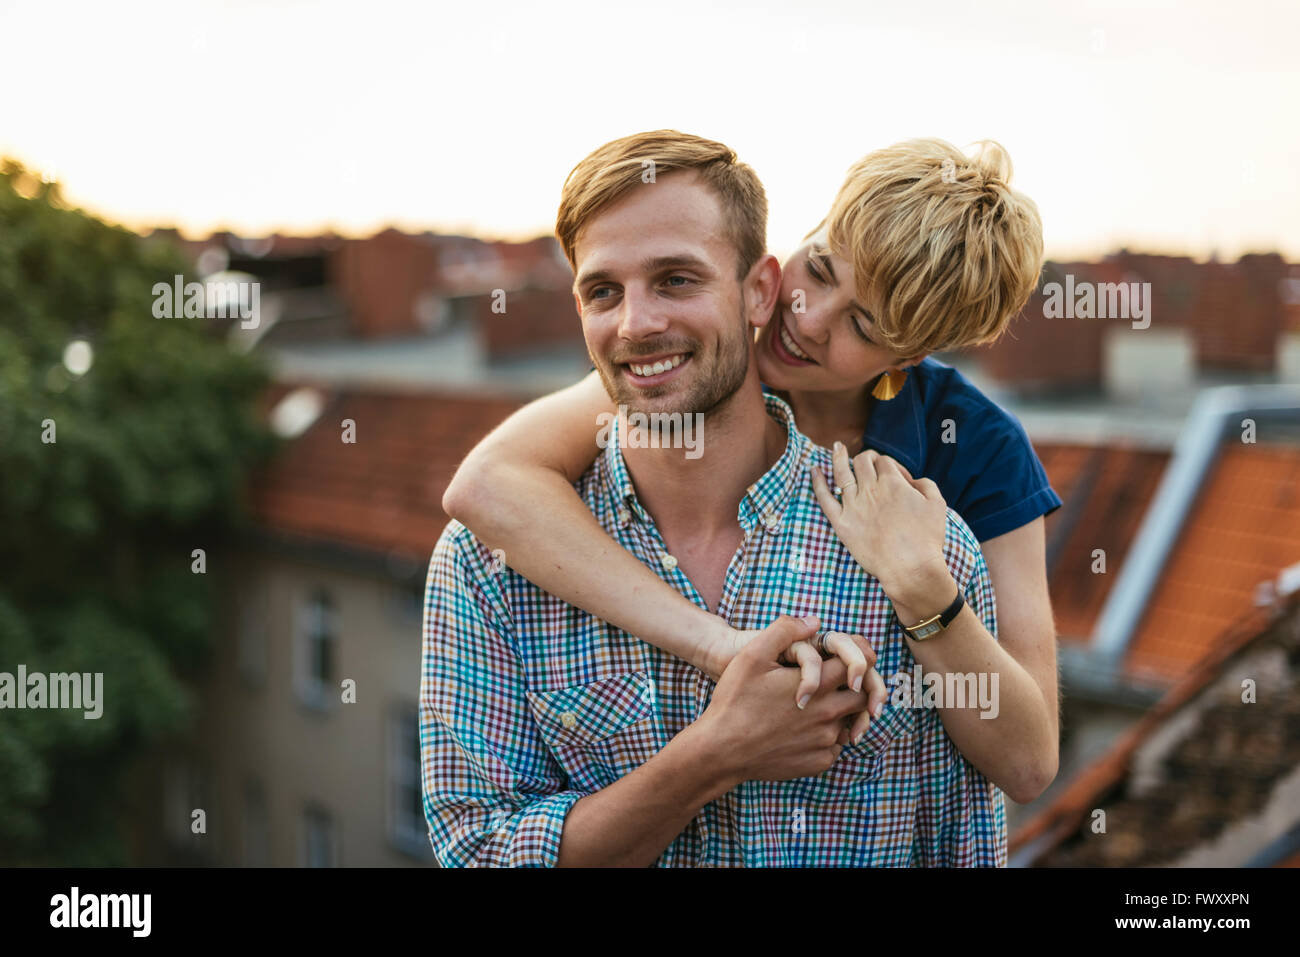 Germany, Berlin, Young couple hugging on rooftop at sunset Stock Photo